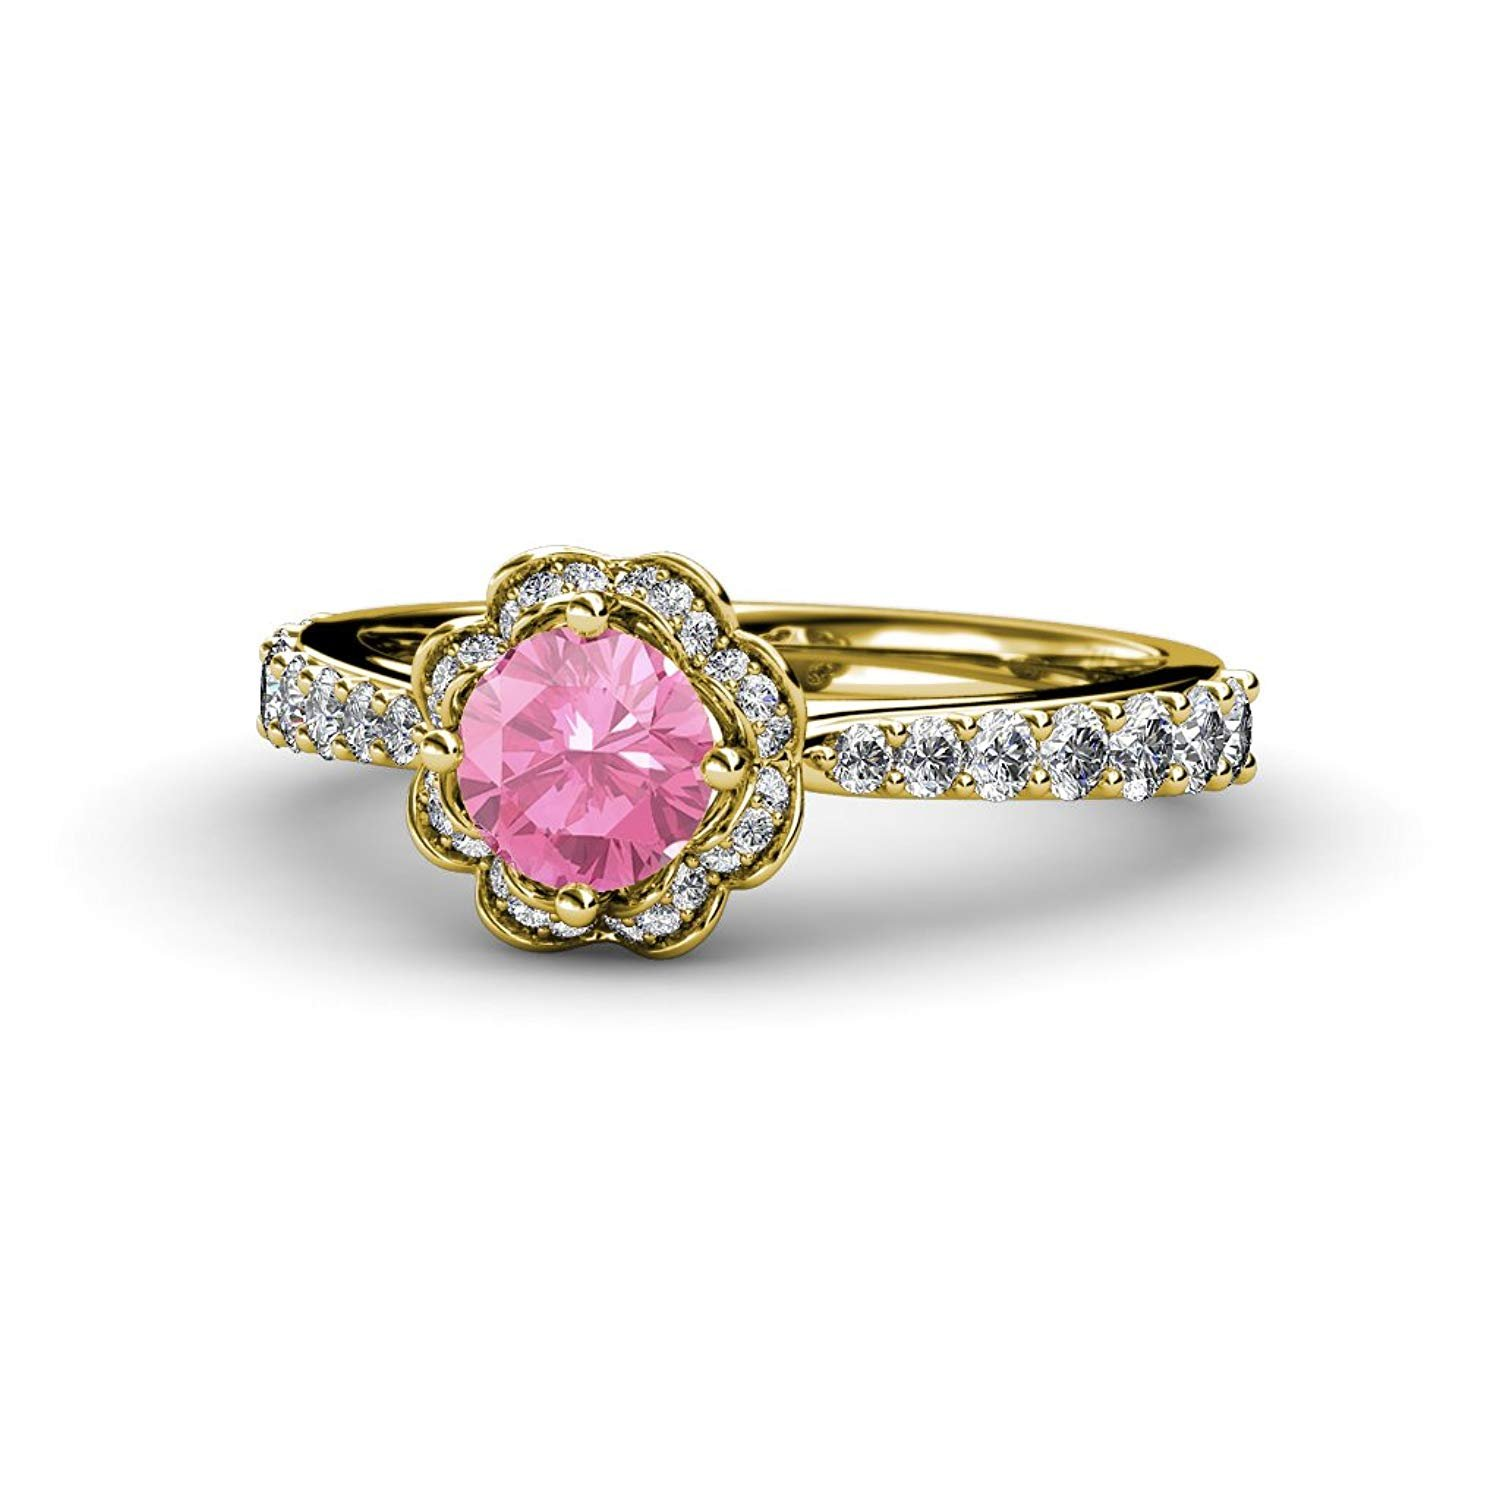 Pink Tourmaline & Diamond (SI2-I1, G-H) Floral Halo Engagement Ring 1.38 cttw in 14K Yellow Gold.size 8.0 by TriJewels